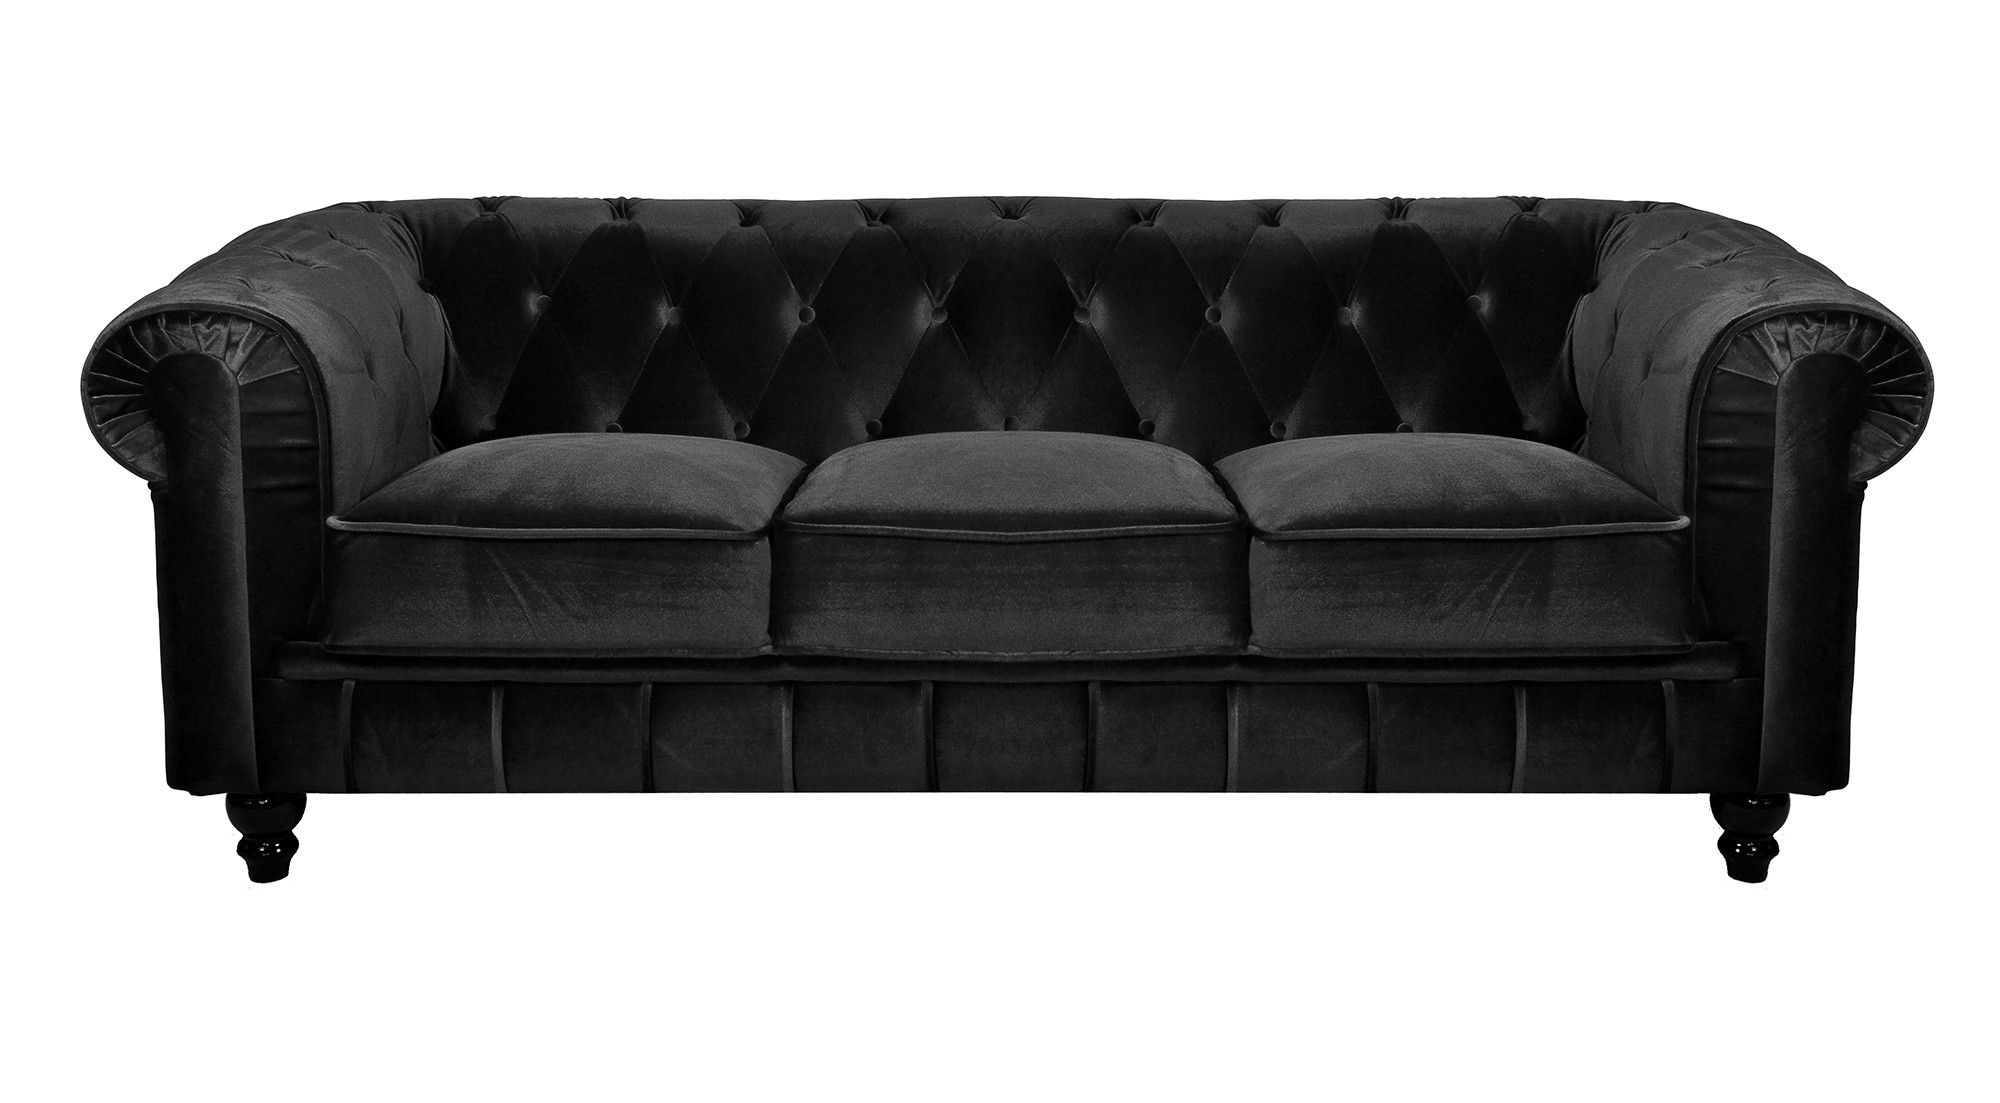 Canape chesterfield convertible meilleures images d for Canape convetible